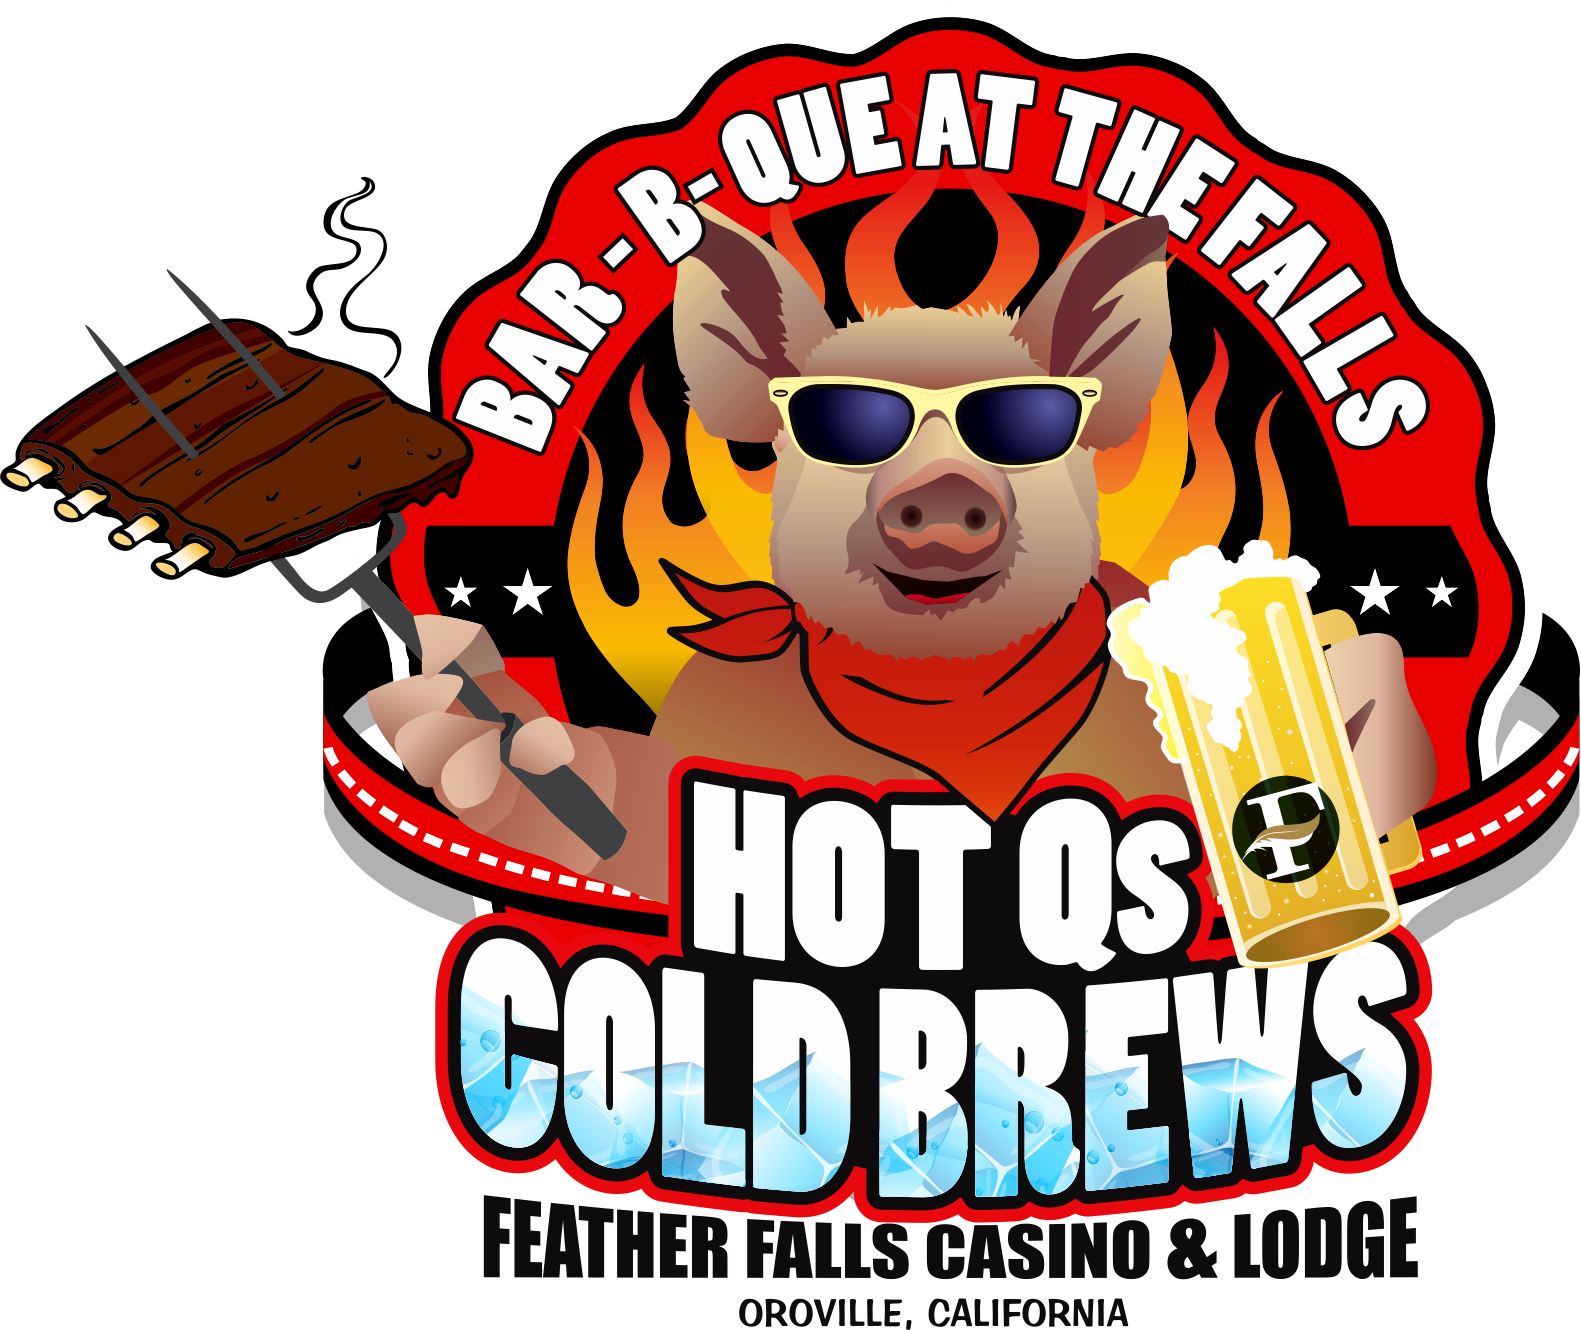 HotQs-ColdBrews